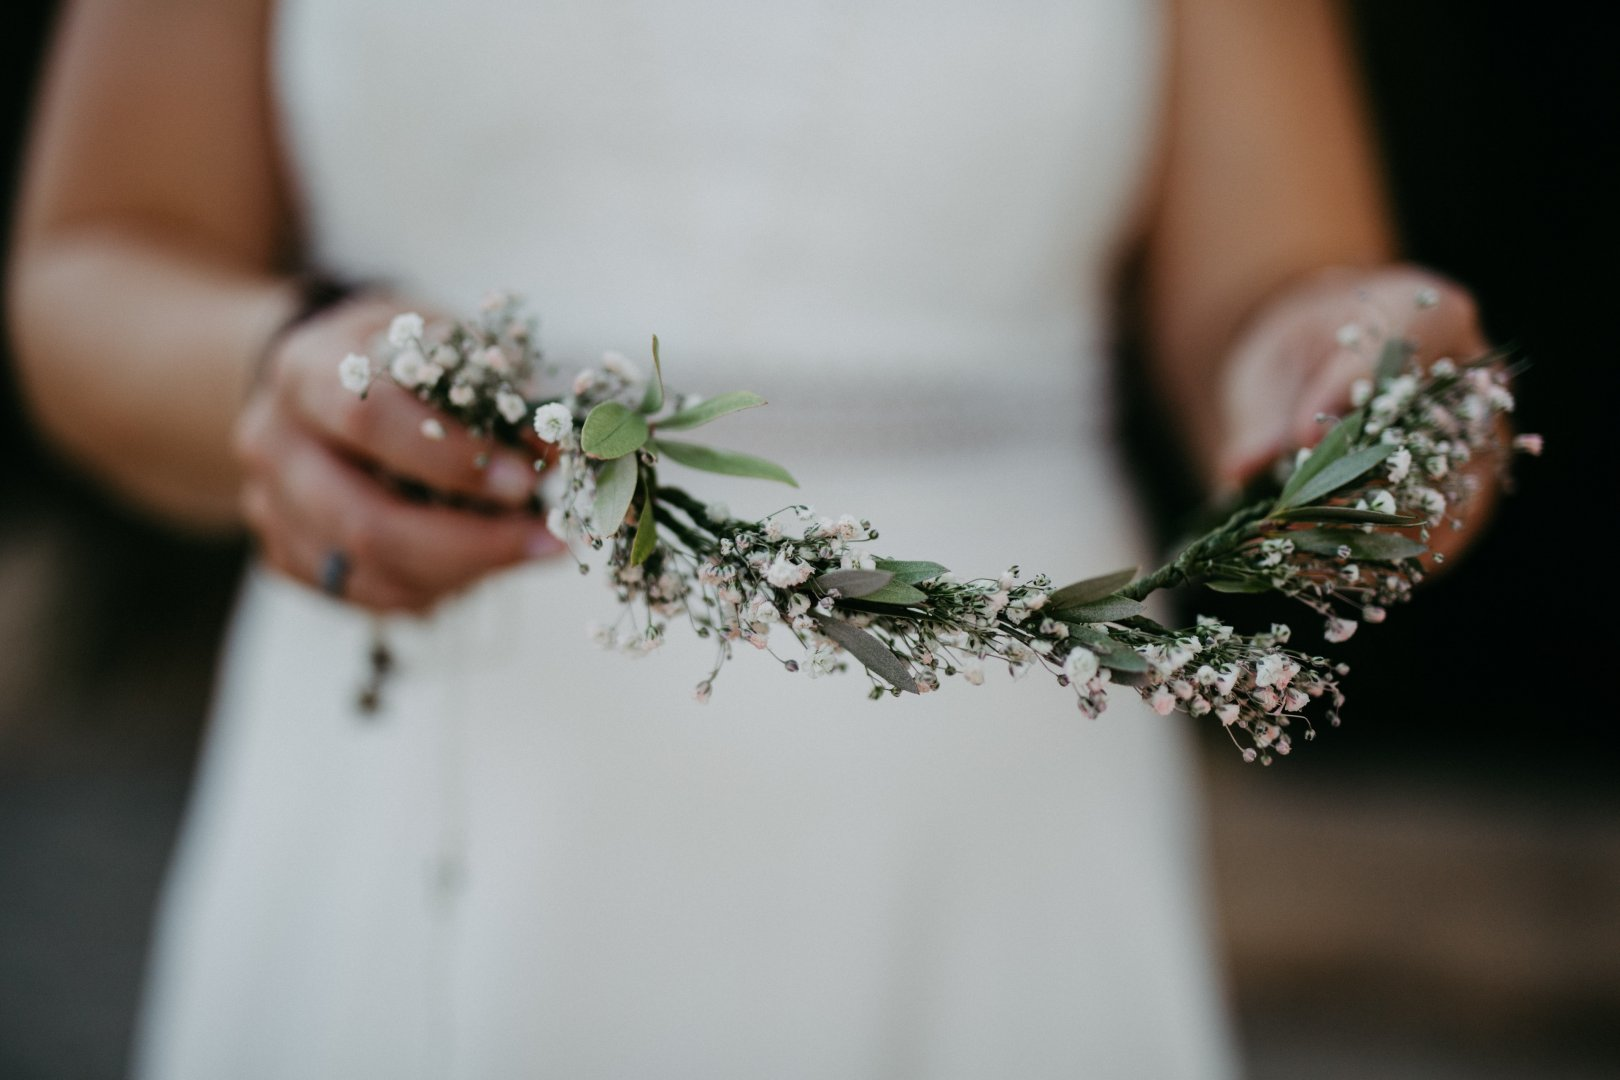 Photograph Dress Bouquet Hand Flower Plant Bride Headpiece Floral design Wedding dress Floristry Fashion accessory Gown Finger Photography Flower Arranging Nail Jewellery Marriage Hair accessory Ceremony